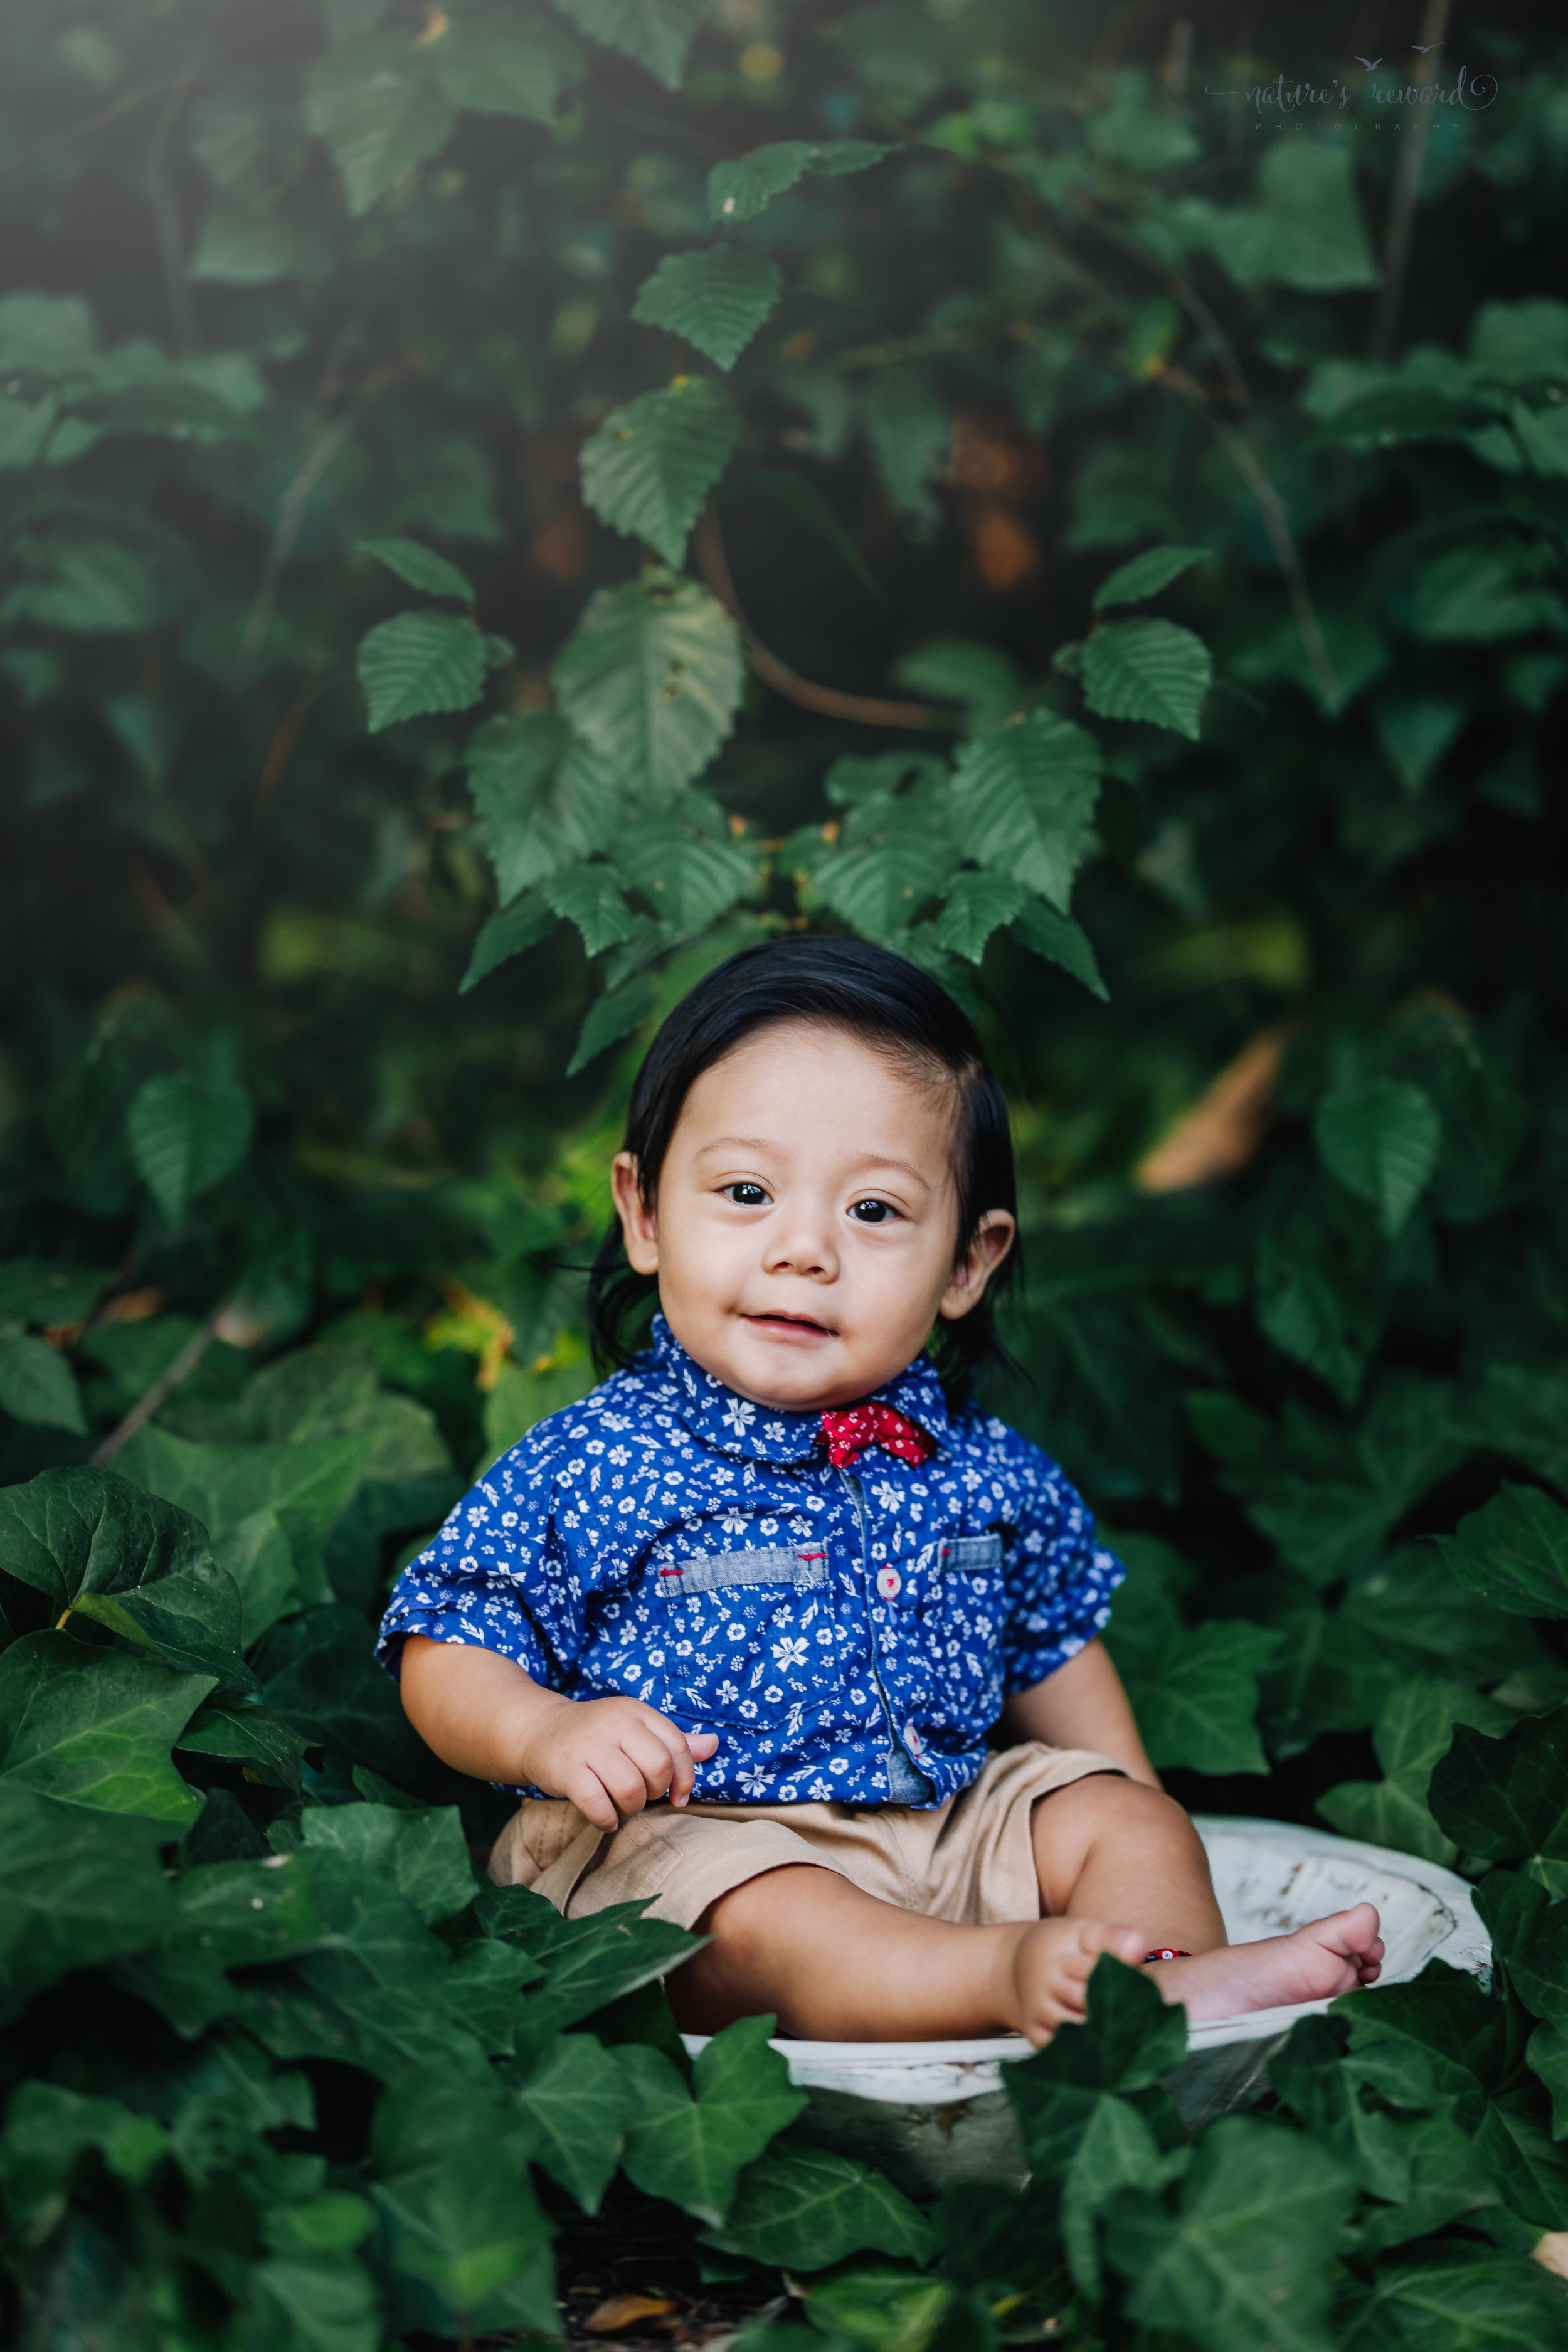 Six month old sitter session in the ivy wearing a button down and a bow tie. A portrait by Nature's Reward Photography